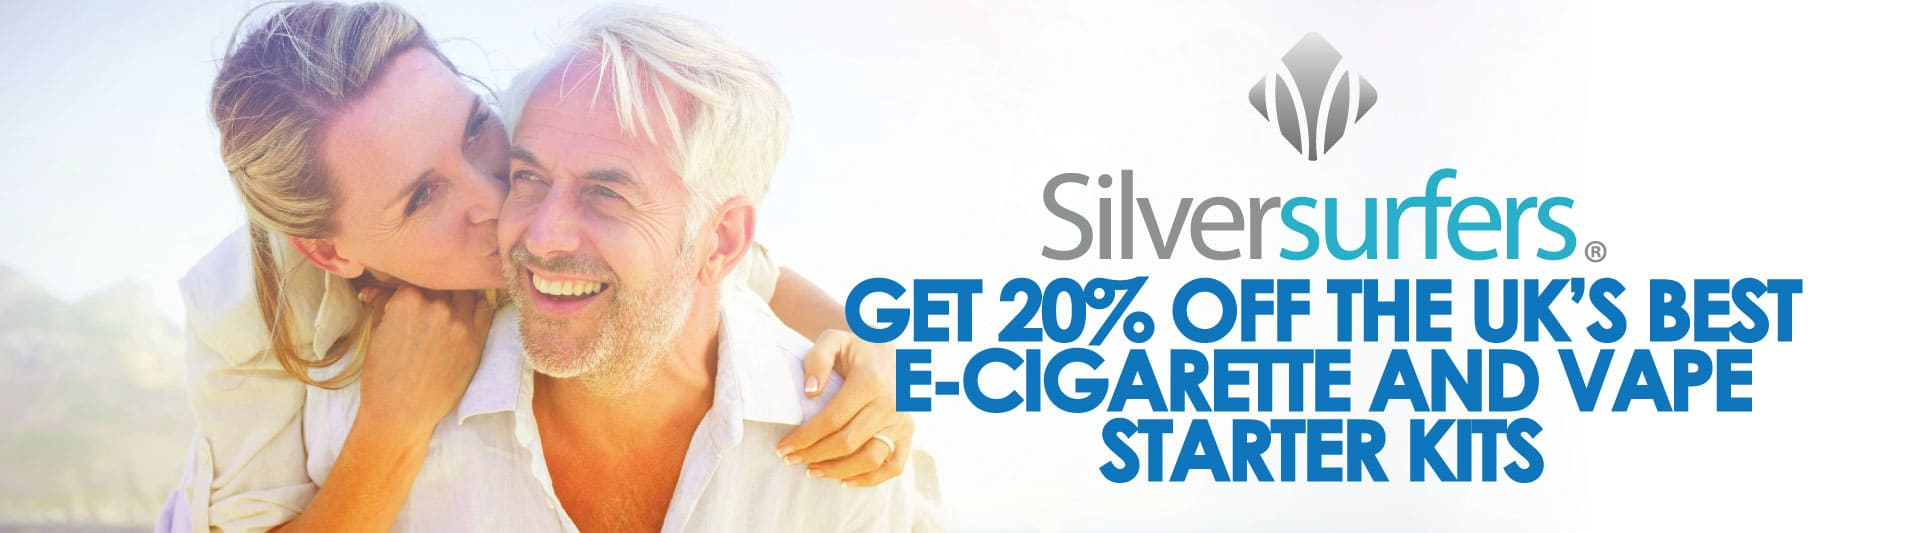 SMOKO E-Cigarettes has a partnership with Silversurfers that gives their members great savings and discounts on e-cigarettes and vapes